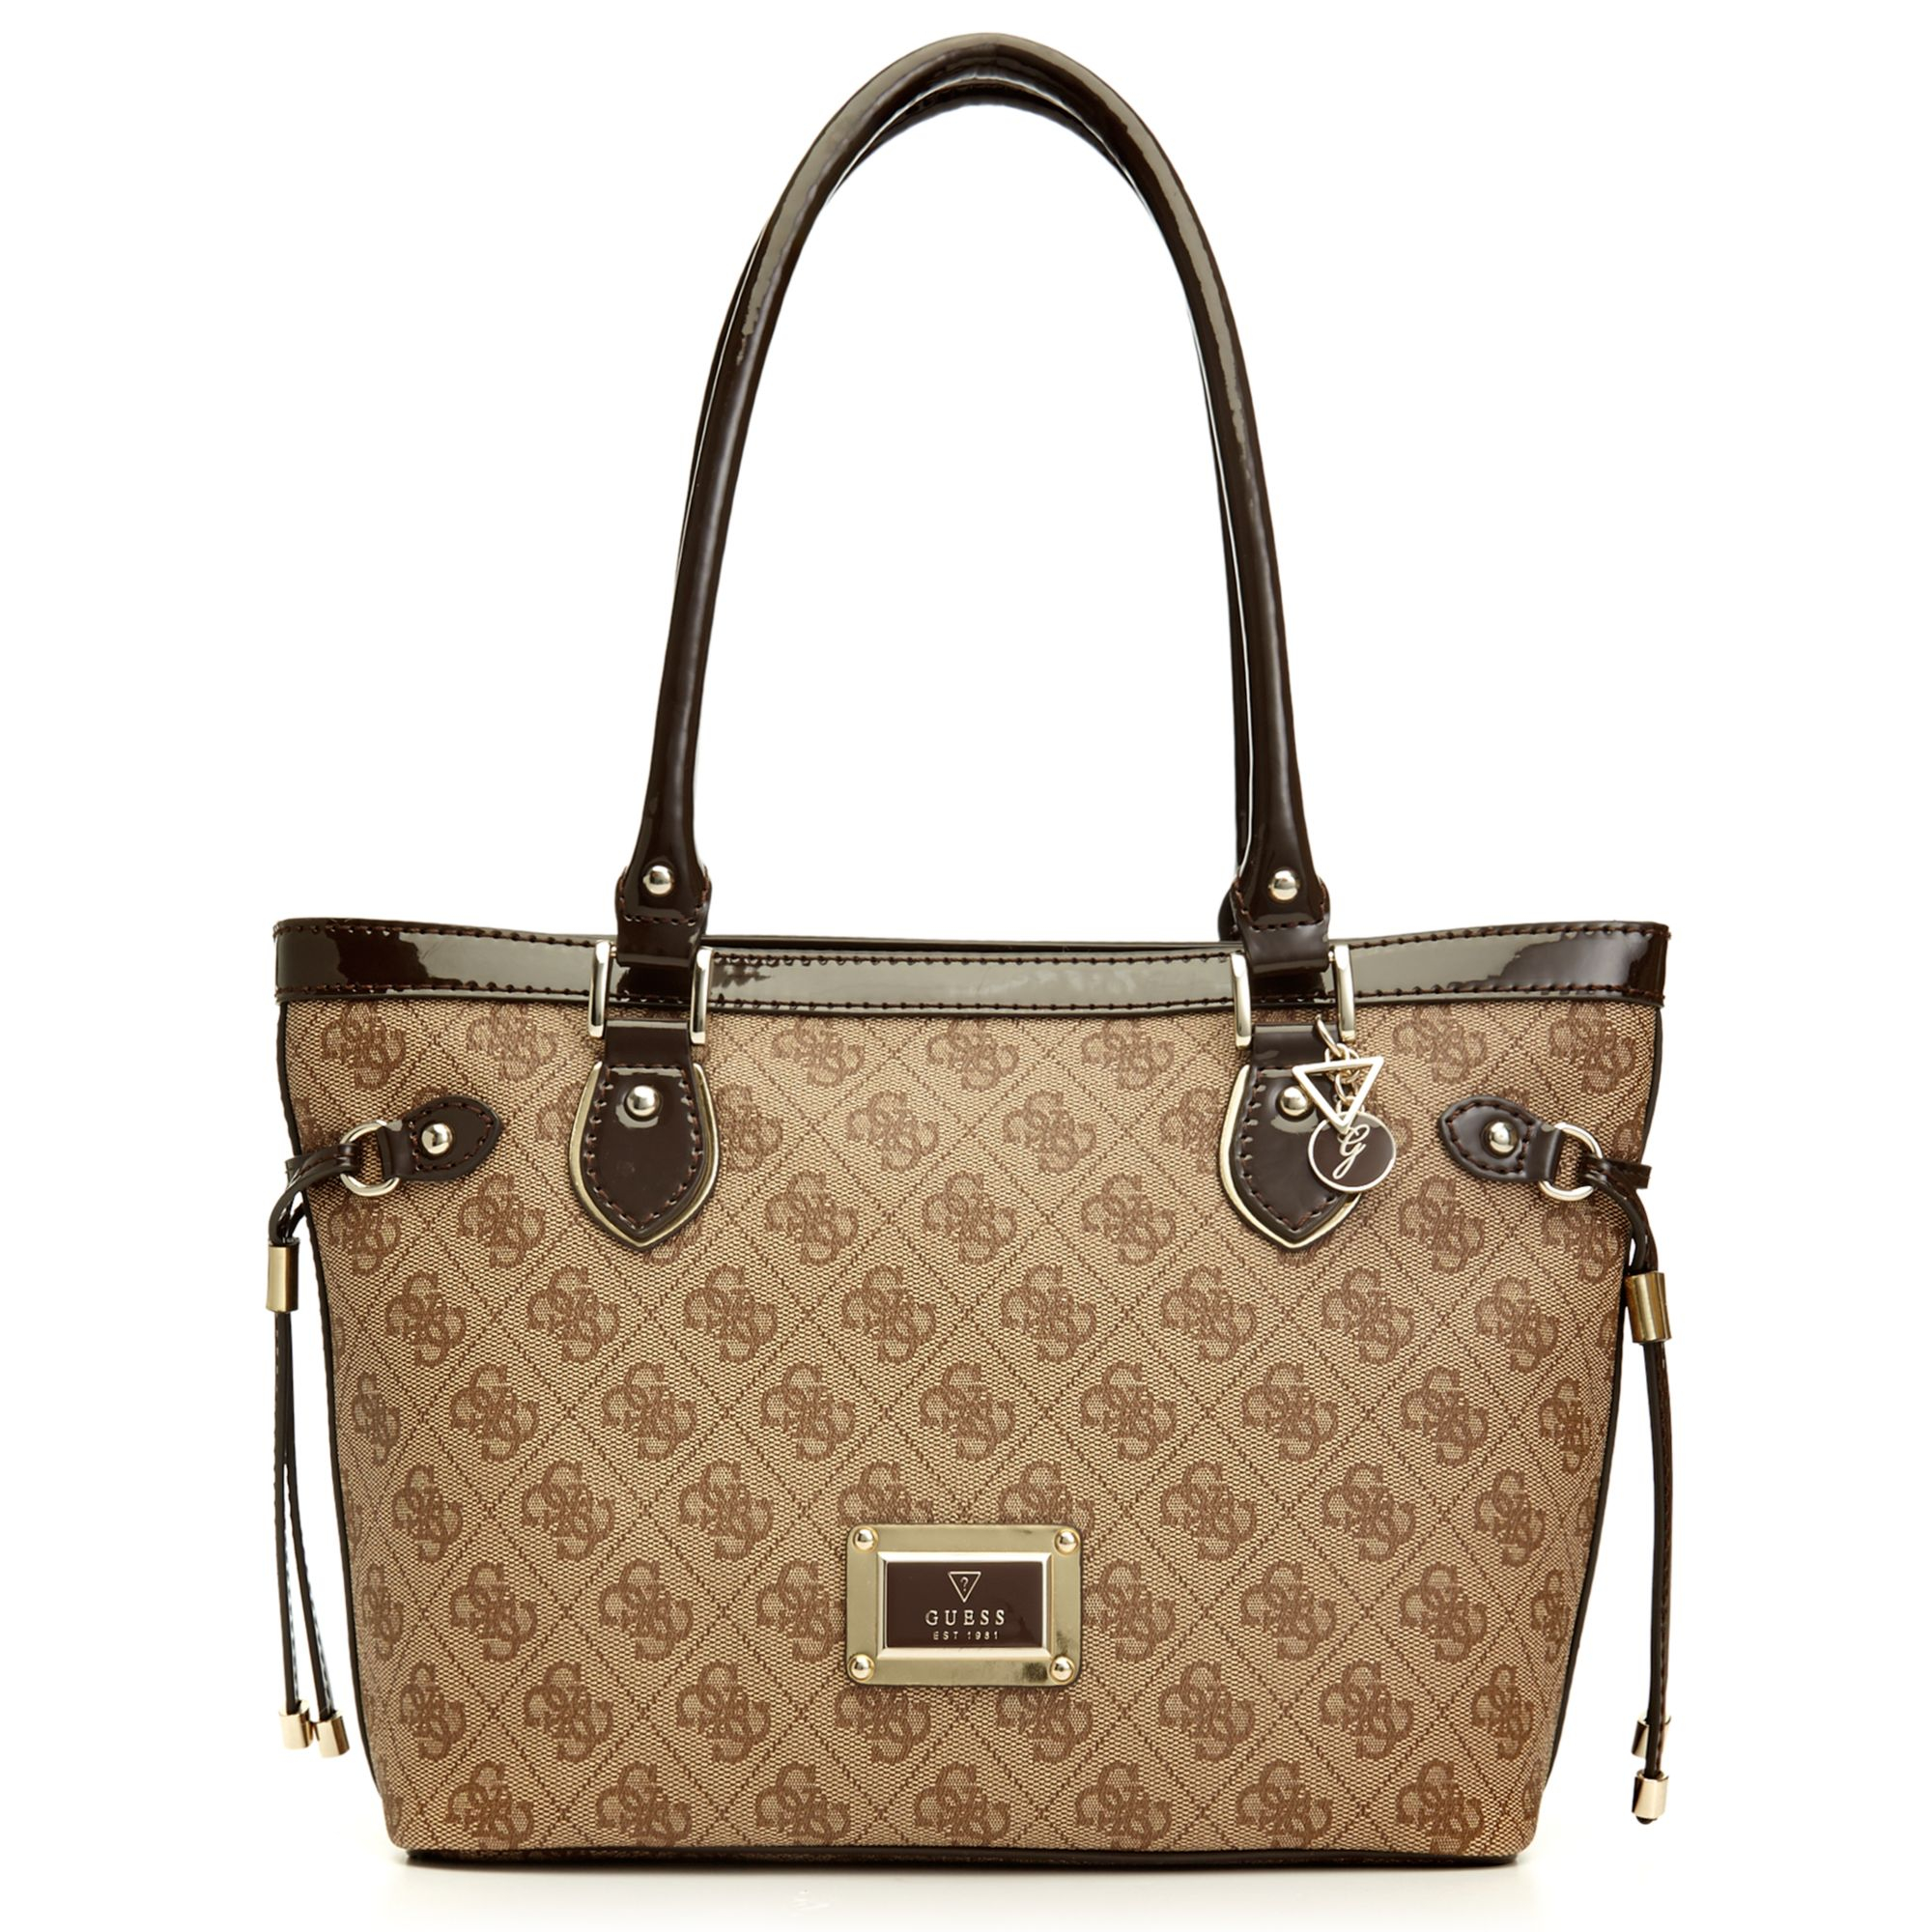 Lyst Guess Guess Handbag Reama Small Classic Tote In Brown